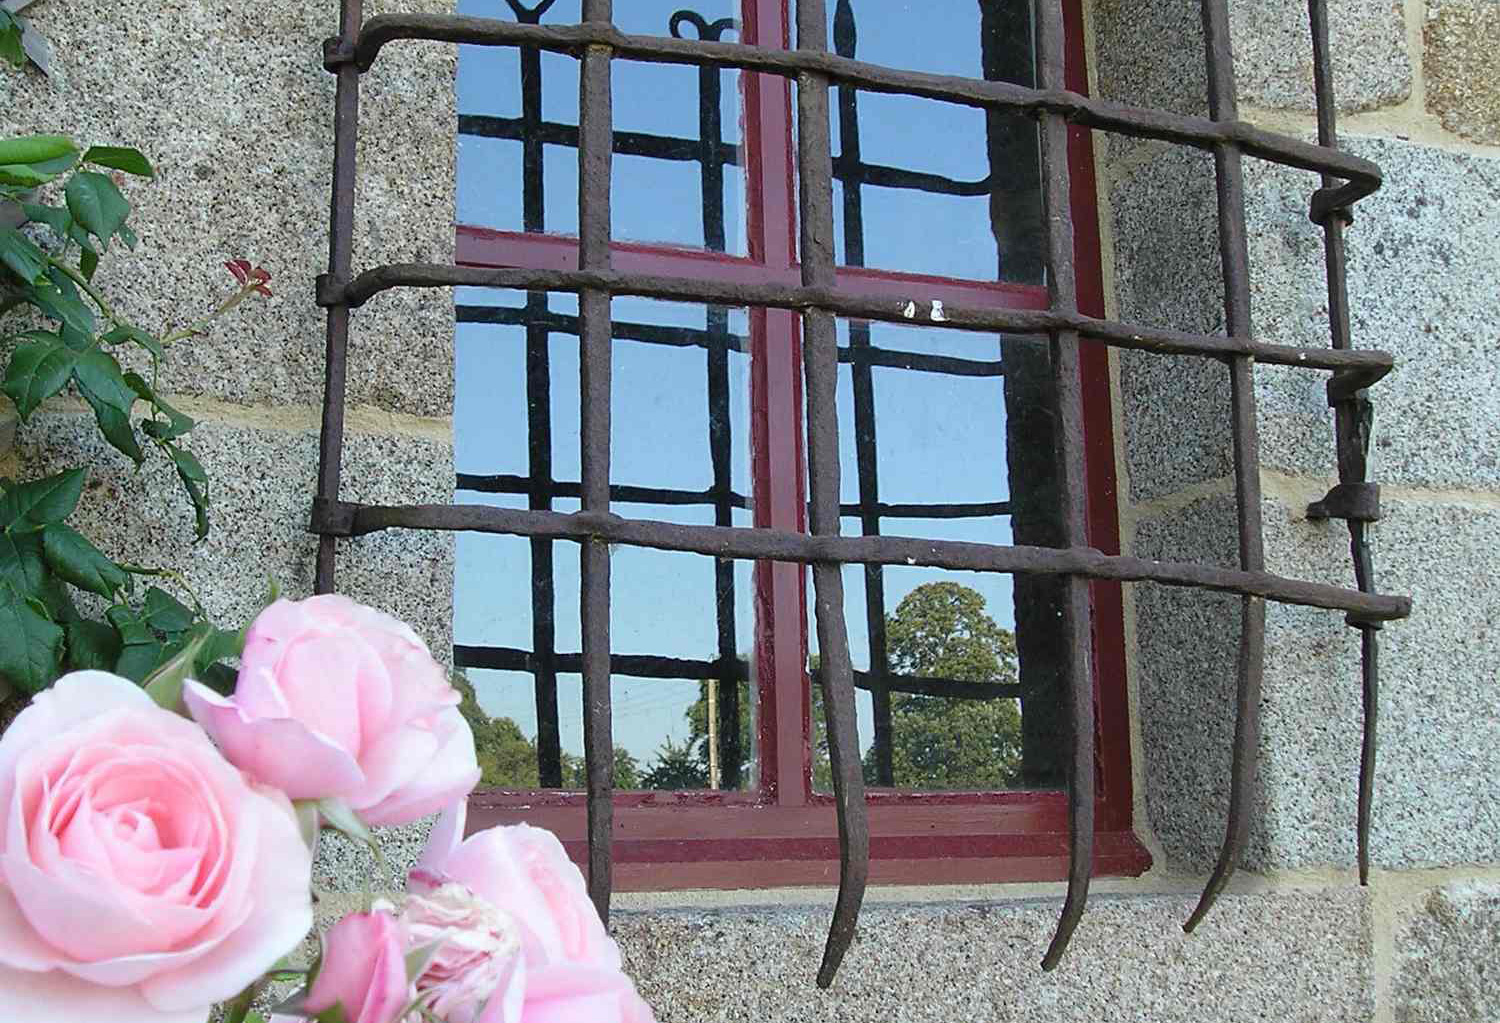 Manoir Du Vaugarny, wrought iron gate, XIV century, medieval Manor House, Brittany